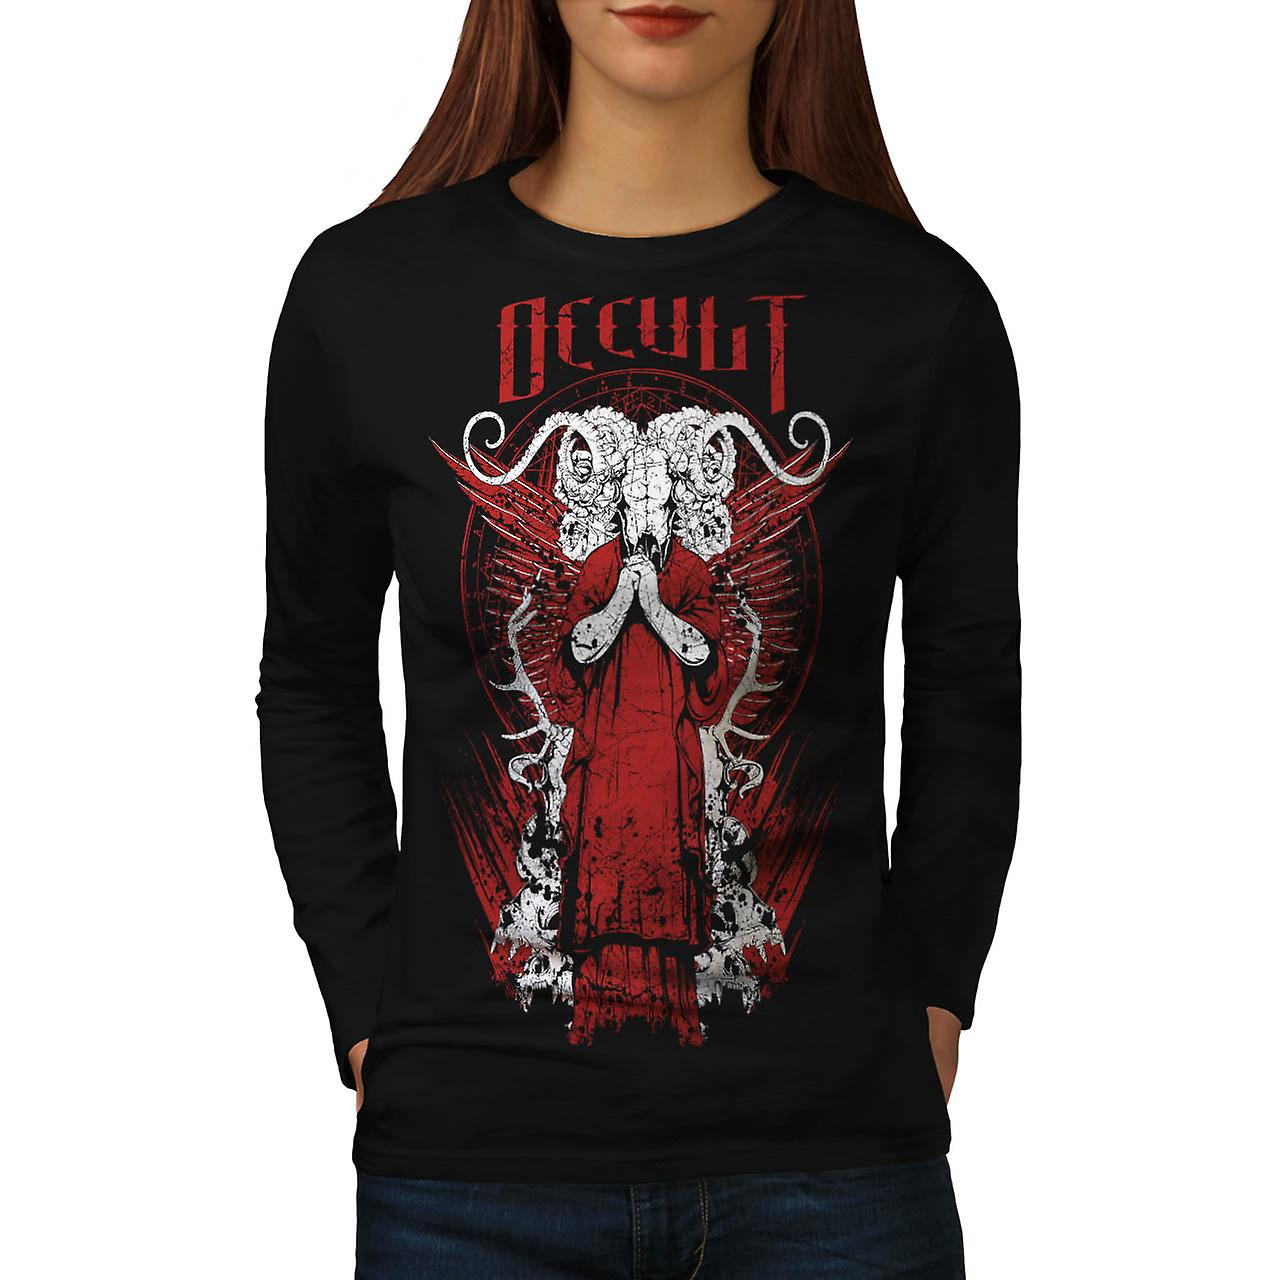 Morte occulta Robe Horror capra donna Black t-shirt manica lunga | Wellcoda